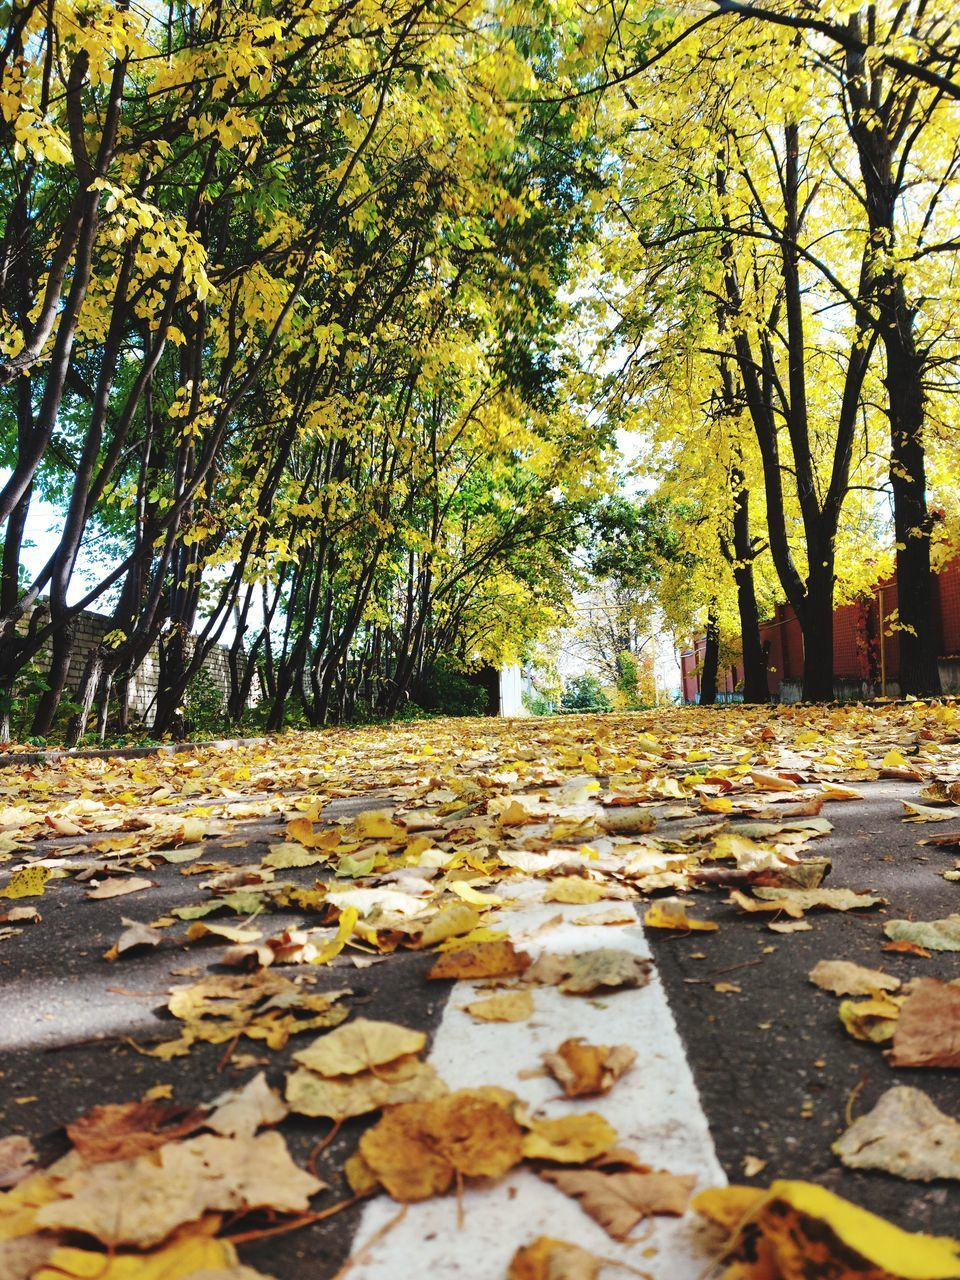 SURFACE LEVEL OF YELLOW LEAVES ON FOOTPATH